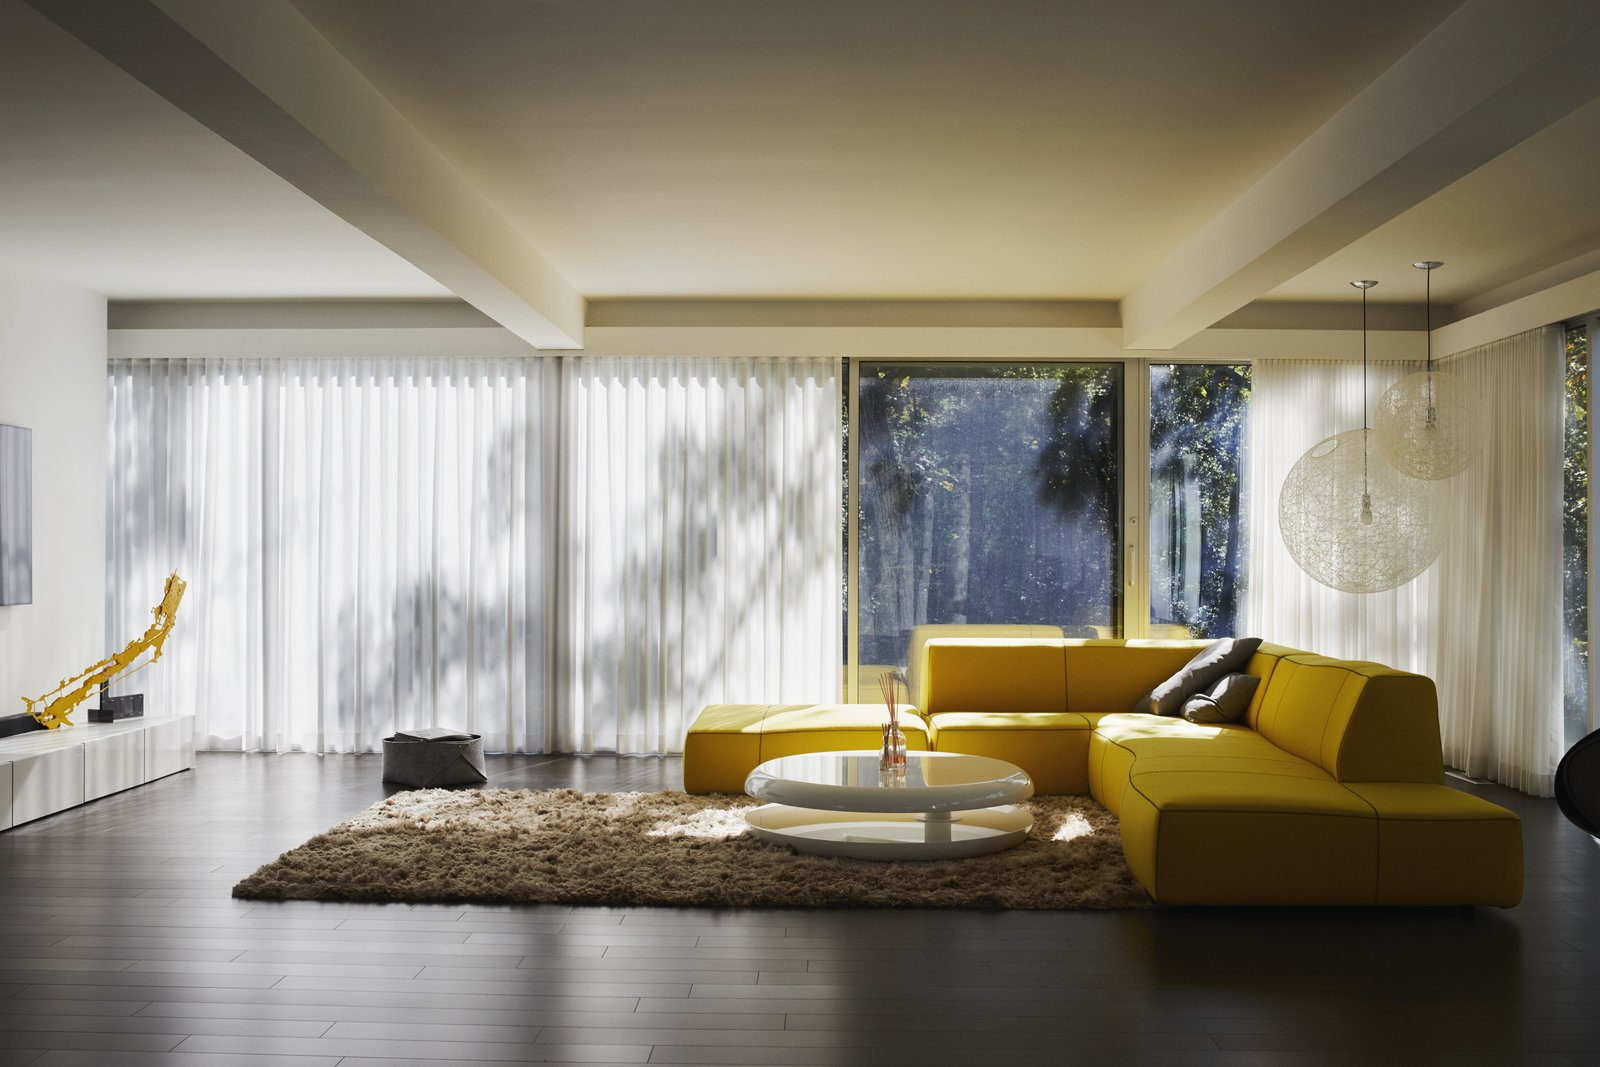 Living Room, Rug Floor, Dark Hardwood Floor, Sofa, Pendant Lighting, and Coffee Tables In keeping with Viks's design, the living room remains on the second floor. A bright yellow artwork by Ken'ichiro Taniguchi complements the Bend Sofa by Patricia Urquiola for B&B Italia. The Random pendant lights are by Bertjan Pot for Moooi, the Yo-Yo coffee table is by Emanuele Zenere, and the Maltino Rug is by Linie Design. The hardwood flooring is from the Admiration line by Mirage.  Best Photos from Once Covered in Mold, a Midcentury Gem Outside Chicago Is Reborn